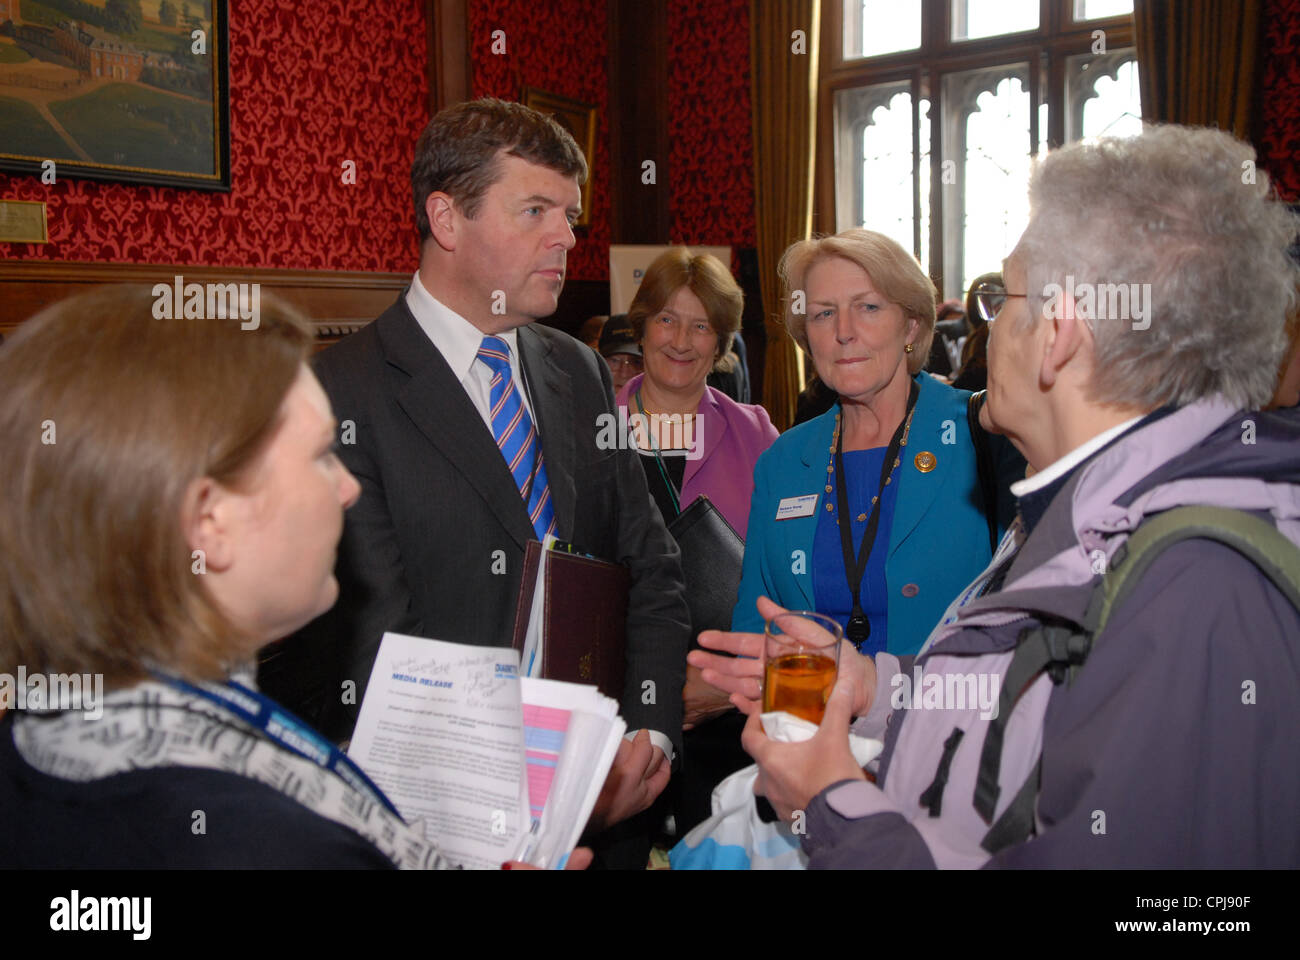 MP Paul Burstow at Houses of Palriament listening to delegates at a Diabetes lobby day, London, UK. - Stock Image